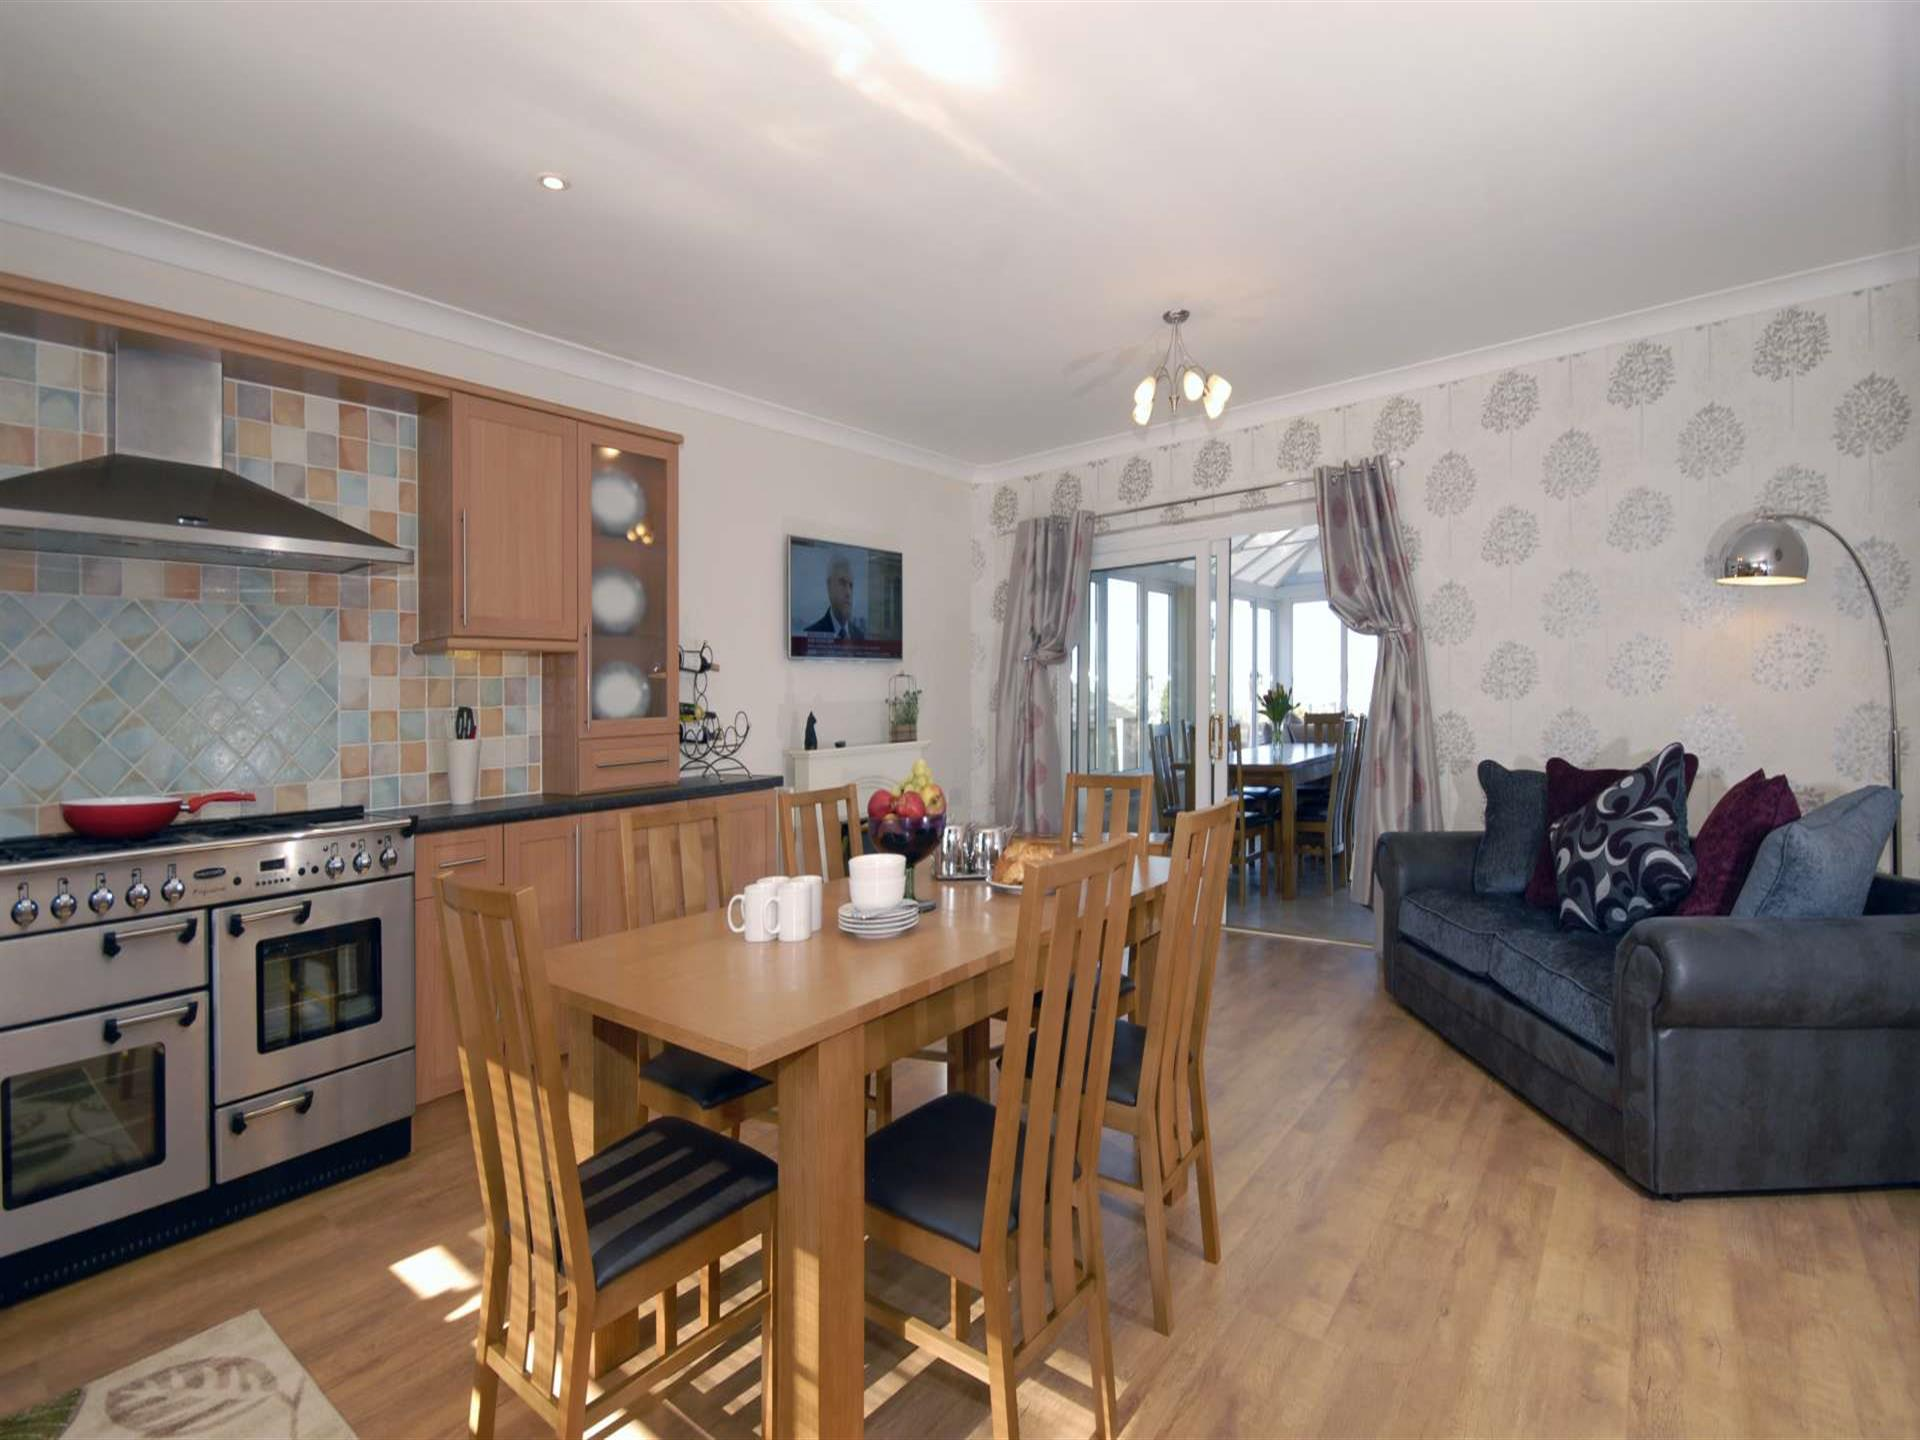 Self-catering Pembrokeshire - luxury kitchen with